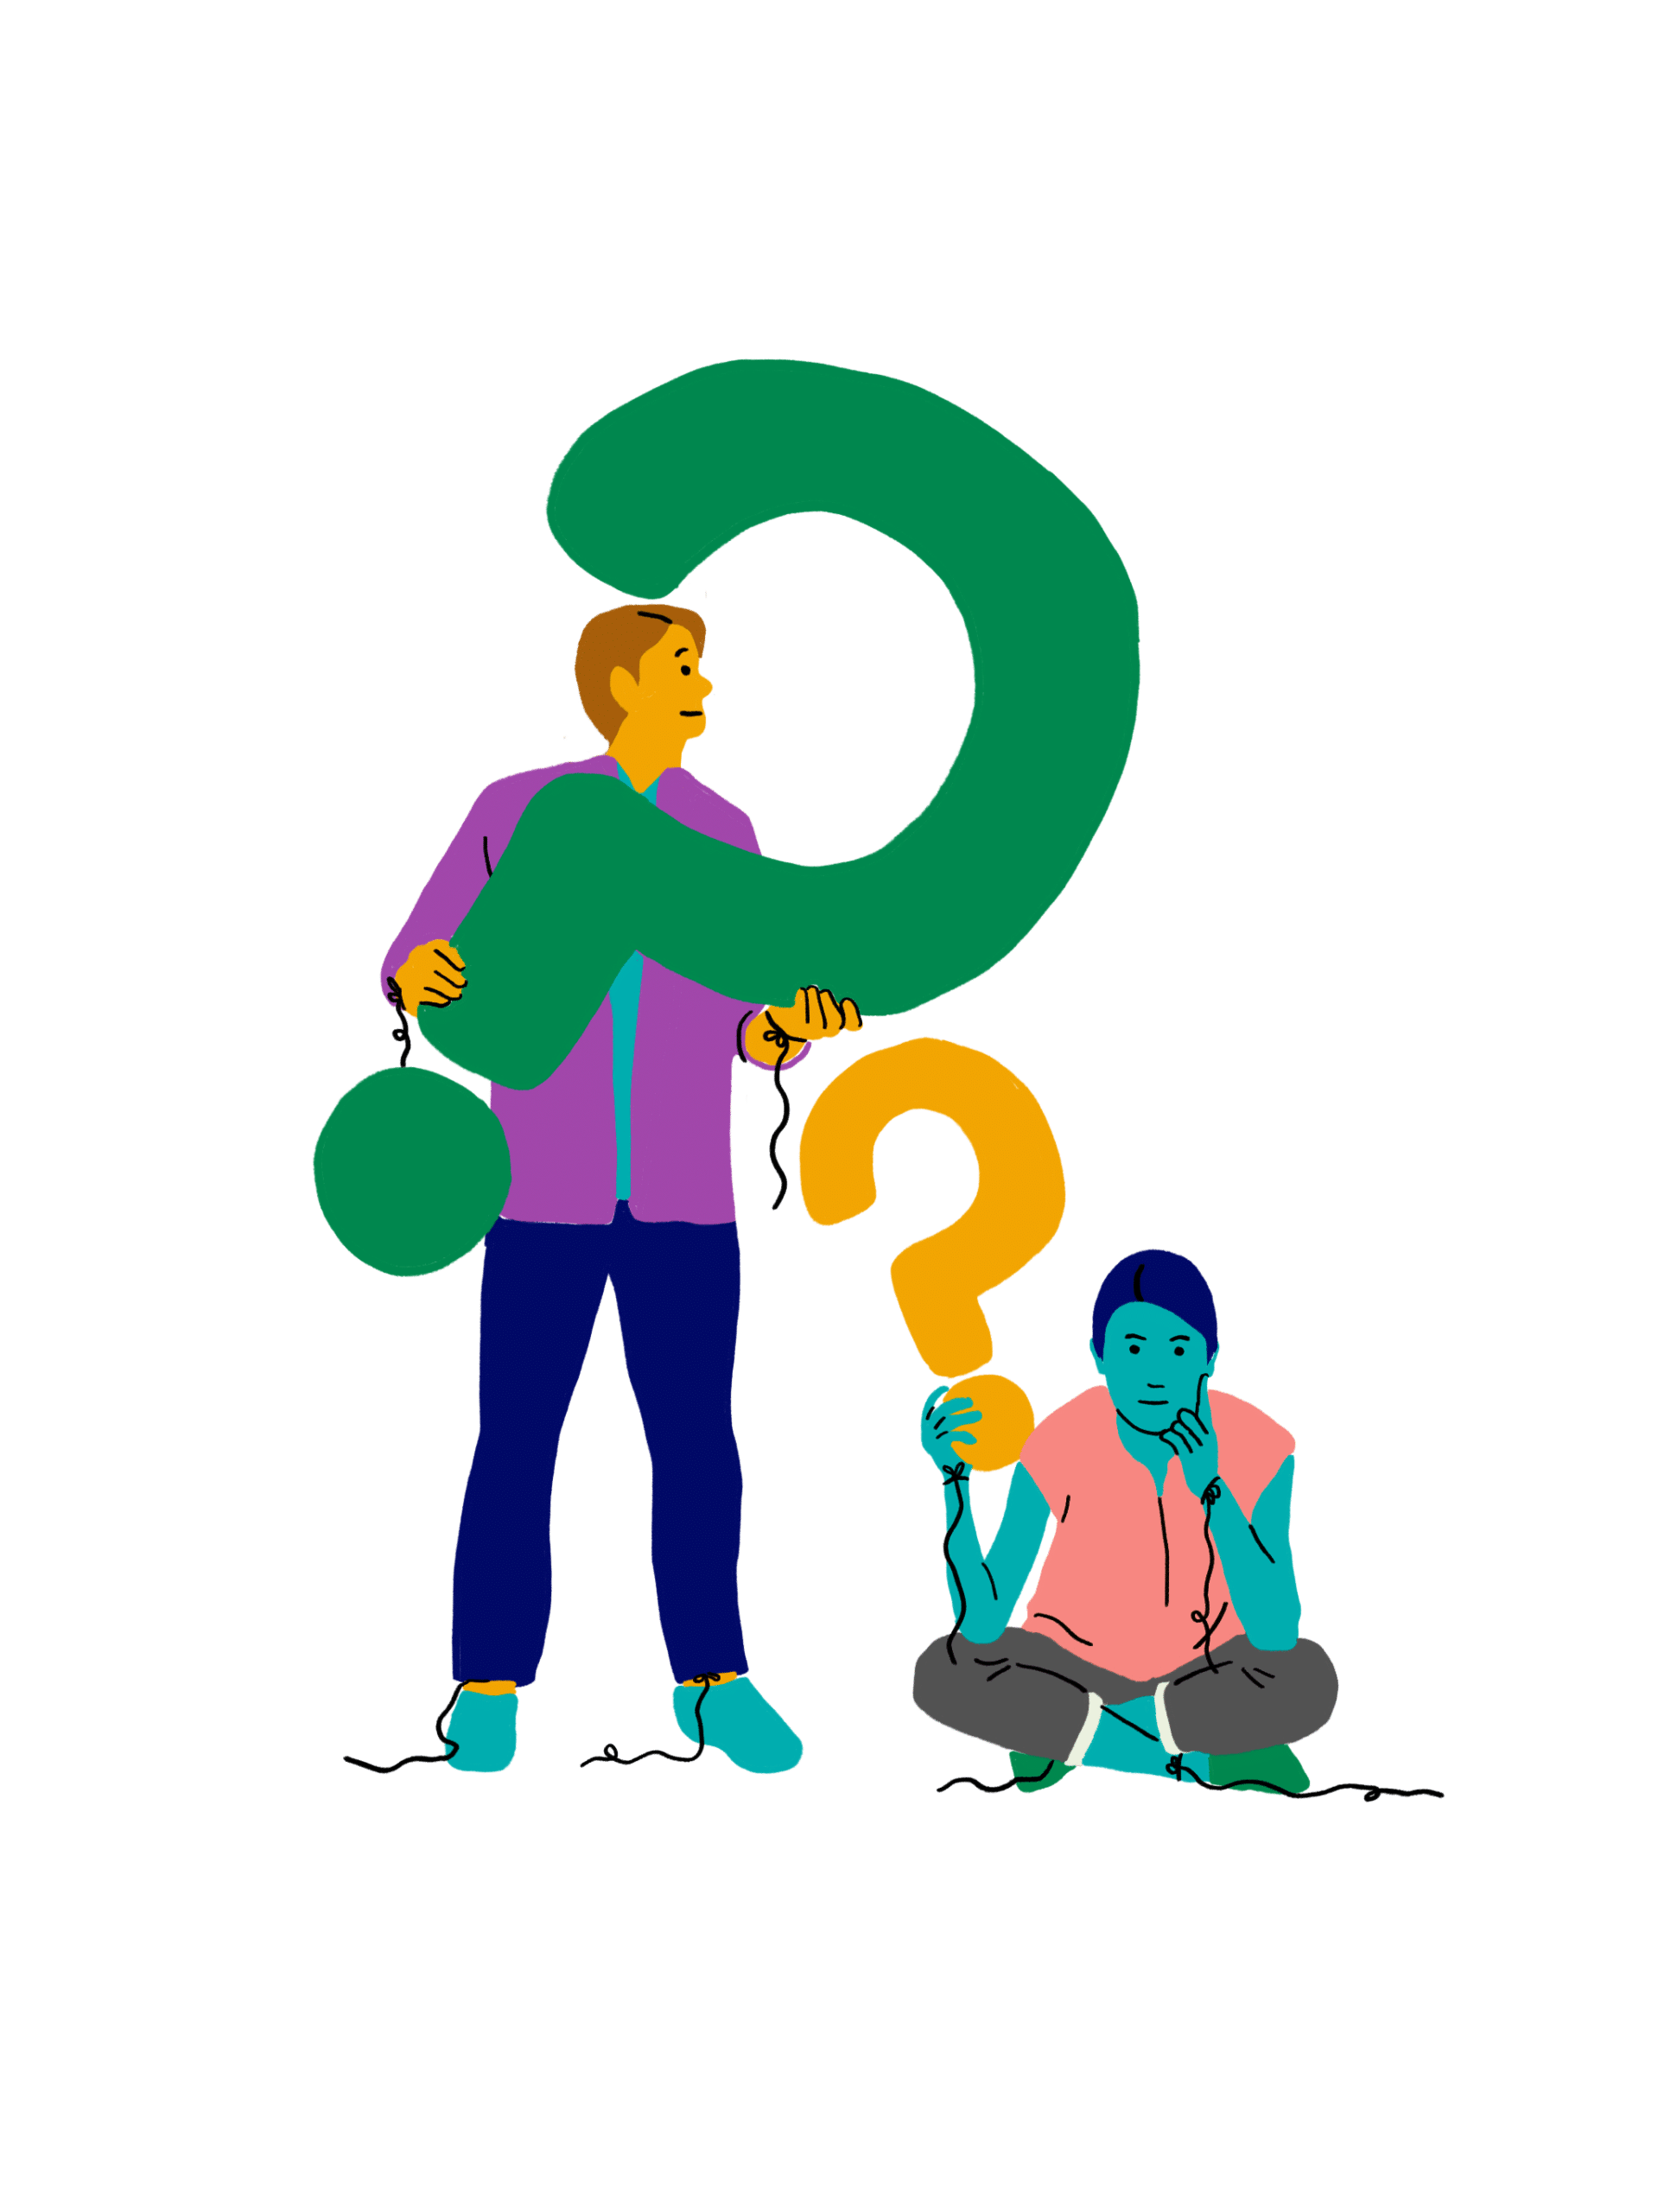 Illustration of people holding a question mark